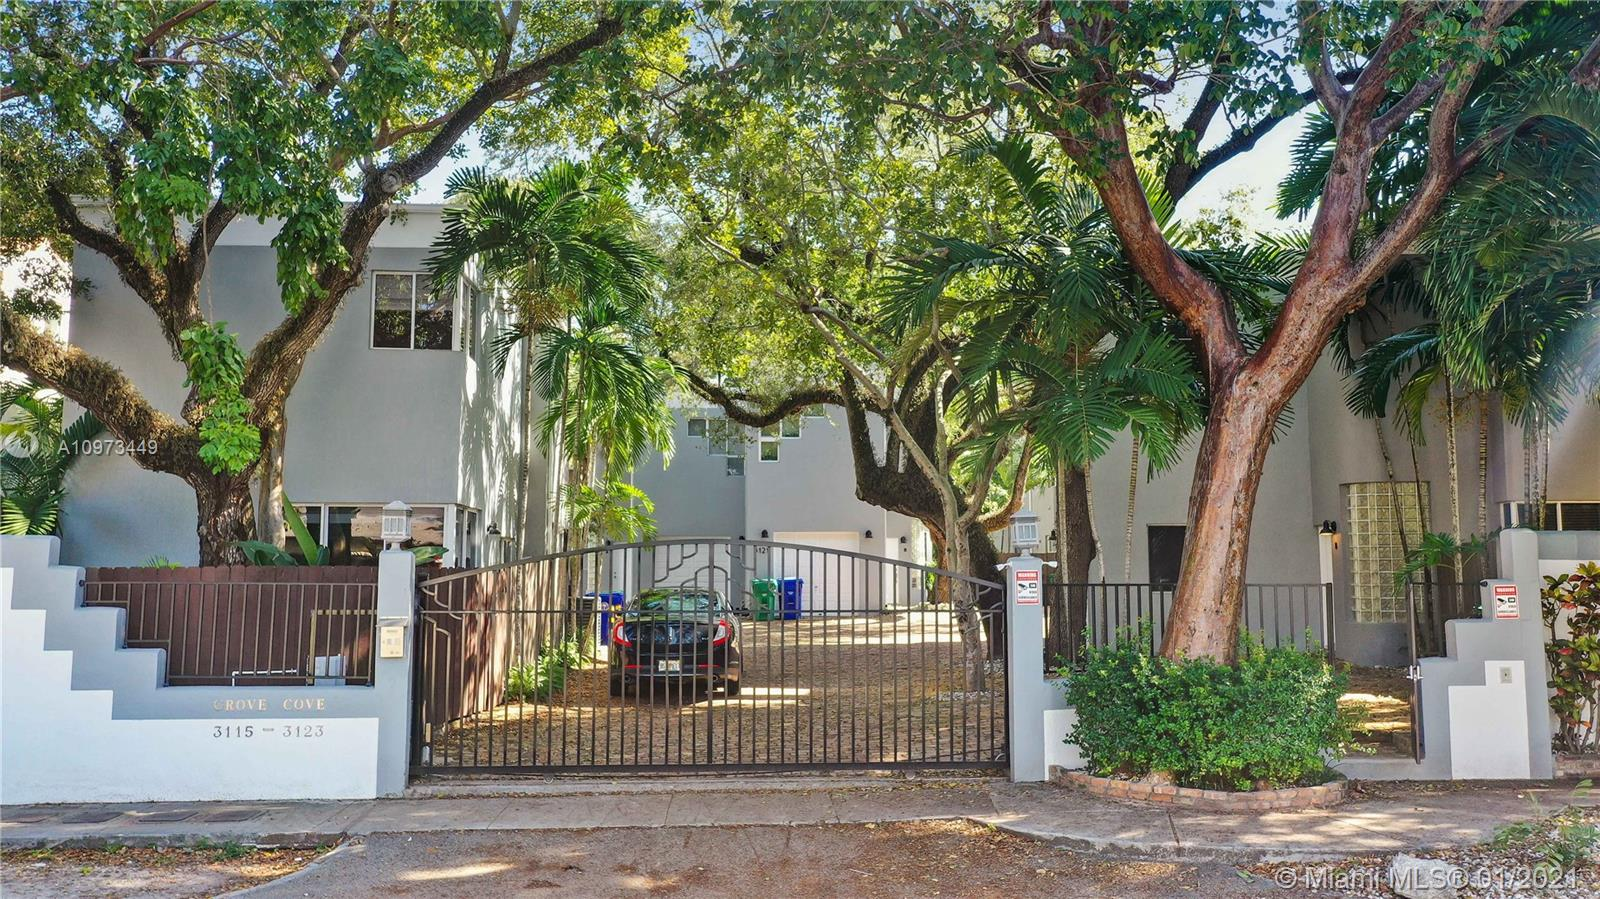 This Beautiful Townhouse is situated in a private pod of town-homes in lush garden under a majestic canopy of native trees with enclosed garage parking. The master bedroom/bathroom with walk-in closet and the 2 junior bedrooms/2 bathroom are in a  the second floor overlooking  the peaceful fenced garden. The 1st floor includes  1 car garage. The main entrance connects to the open kitchen, guest bathroom and a high ceiling dining and living room, this social area is wrapped in south facing glass doors opening to the enchanting garden patio of oaks and palms that gives the necessary energy for serenity to feel home. The property is located in trendy and historic North Coconut Grove, walking distance to the park,dining and shopping, minutes to Coral Gables,Downtown, Brickell and the Beaches.